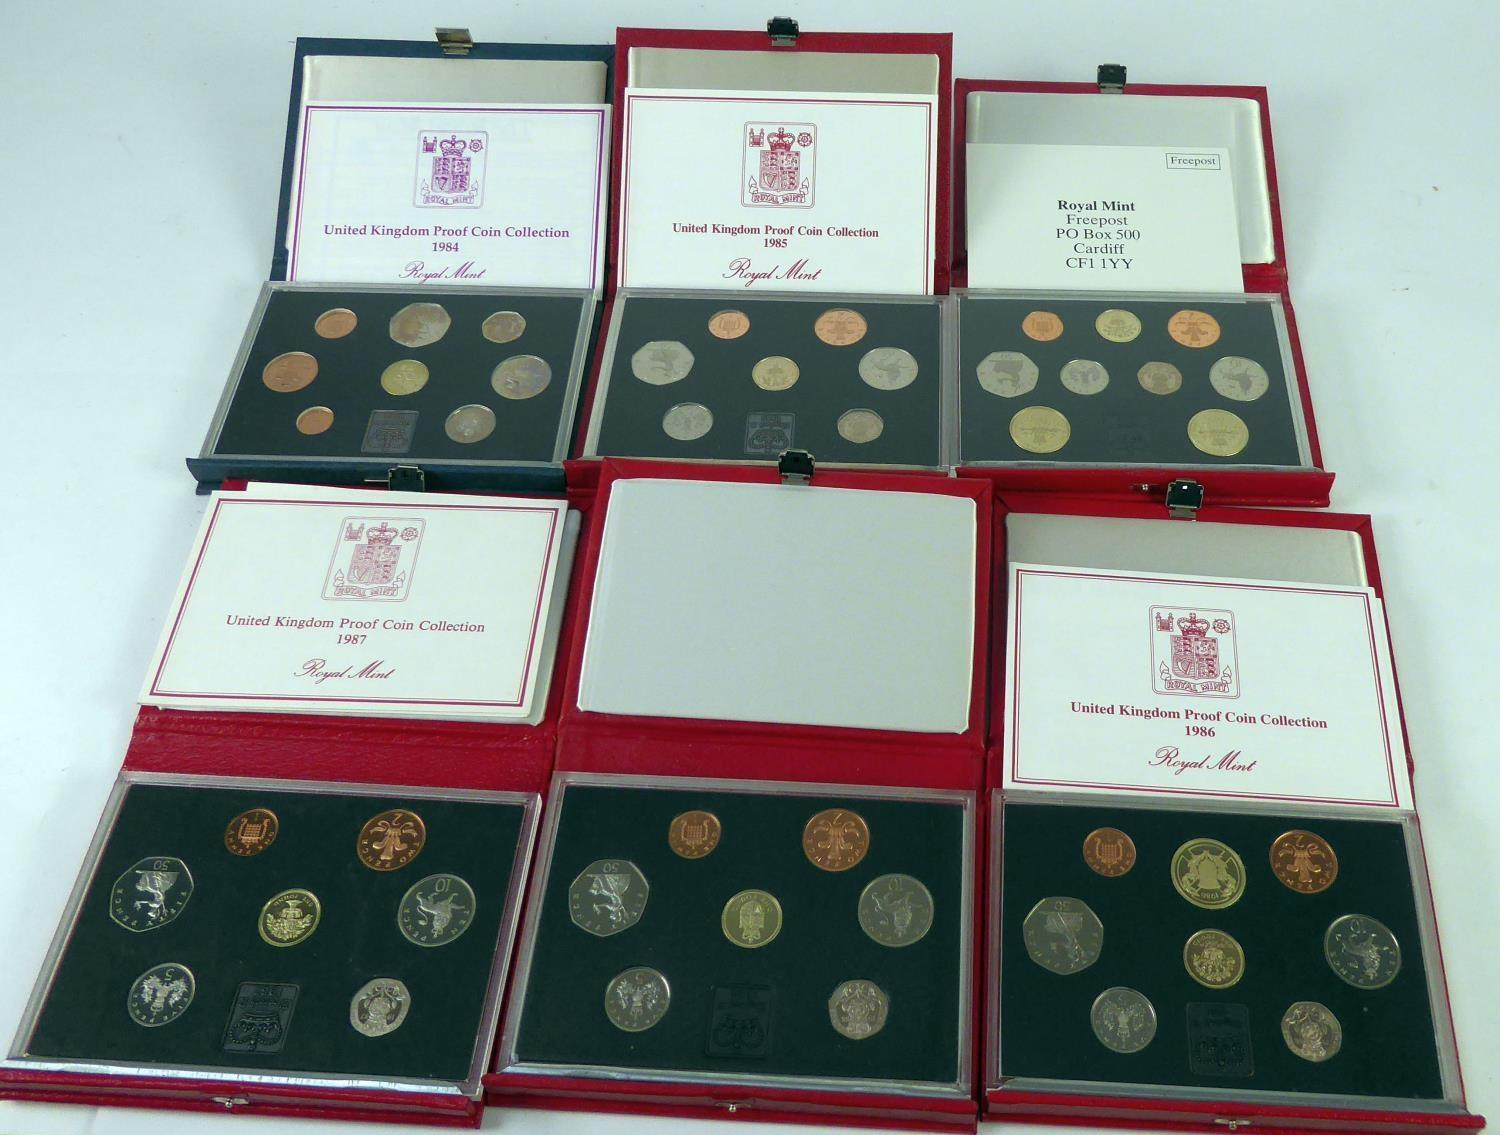 Lot 65 - ROYAL MINT ISSUED COMMEMORATIVE COIN SETS 1984-1989, in original boxes unused (6)